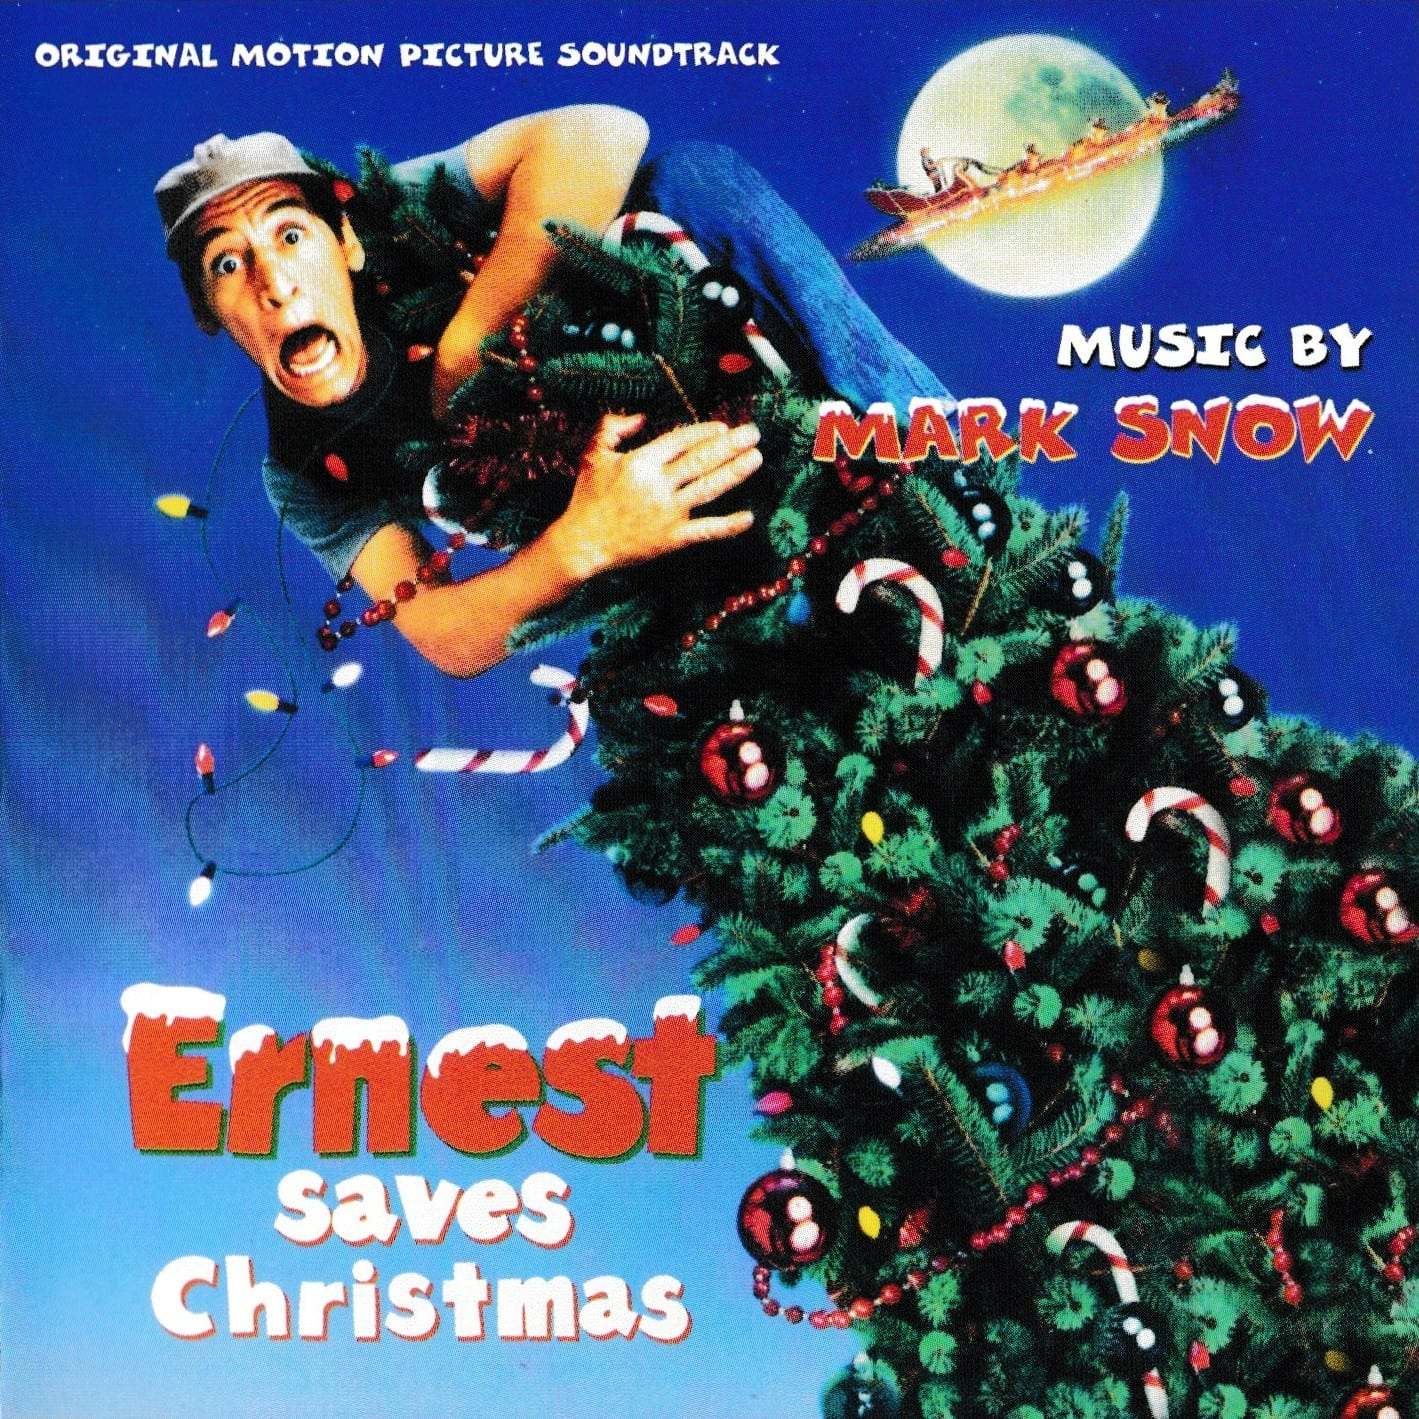 Dr. Seuss' How The Grinch Stole Christmas - Complete Original Motion Picture Score (EXPANDED EDITION) (2007) CD 7